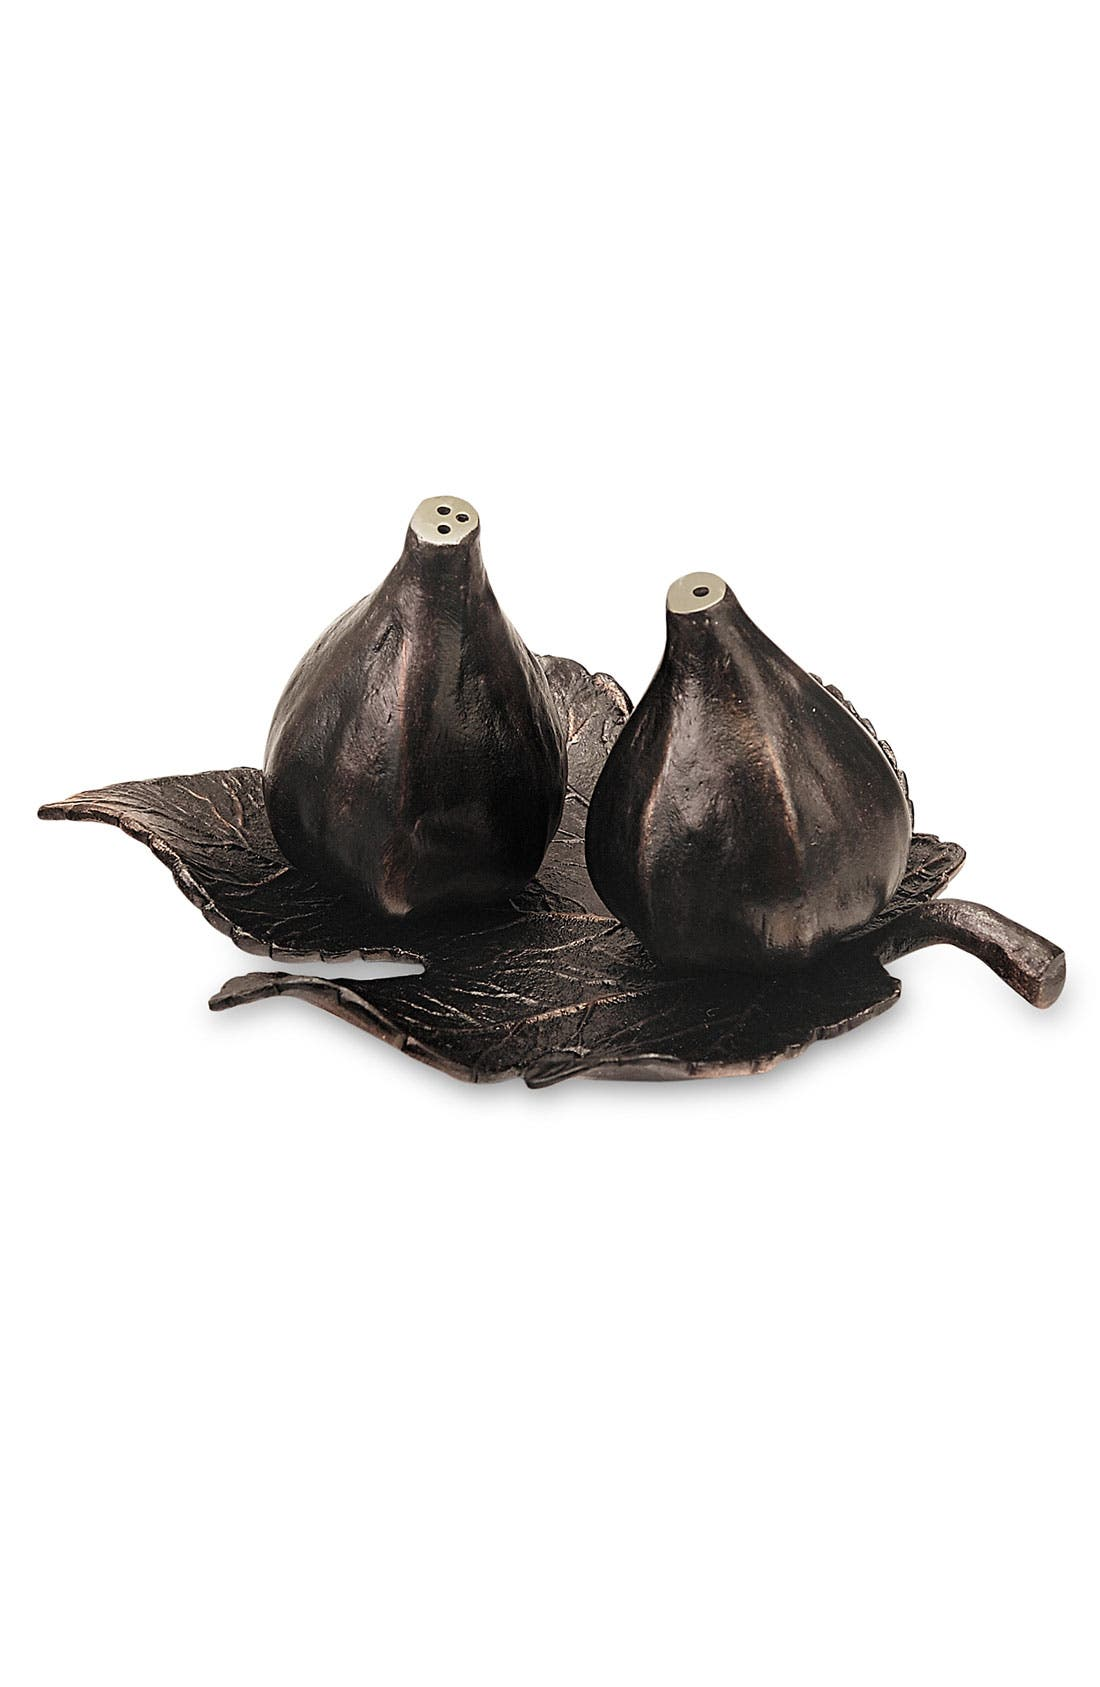 Alternate Image 1 Selected - Michael Aram 'Fig Leaf' Salt & Pepper Shakers